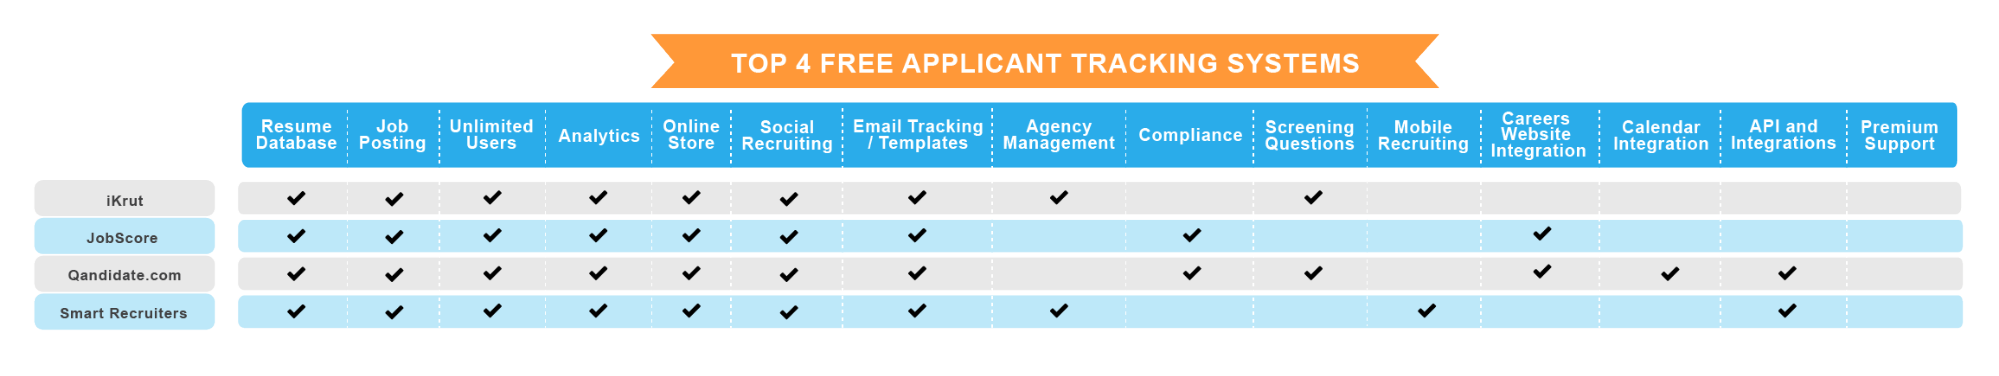 Applicant Tracking Systems - Jobscan